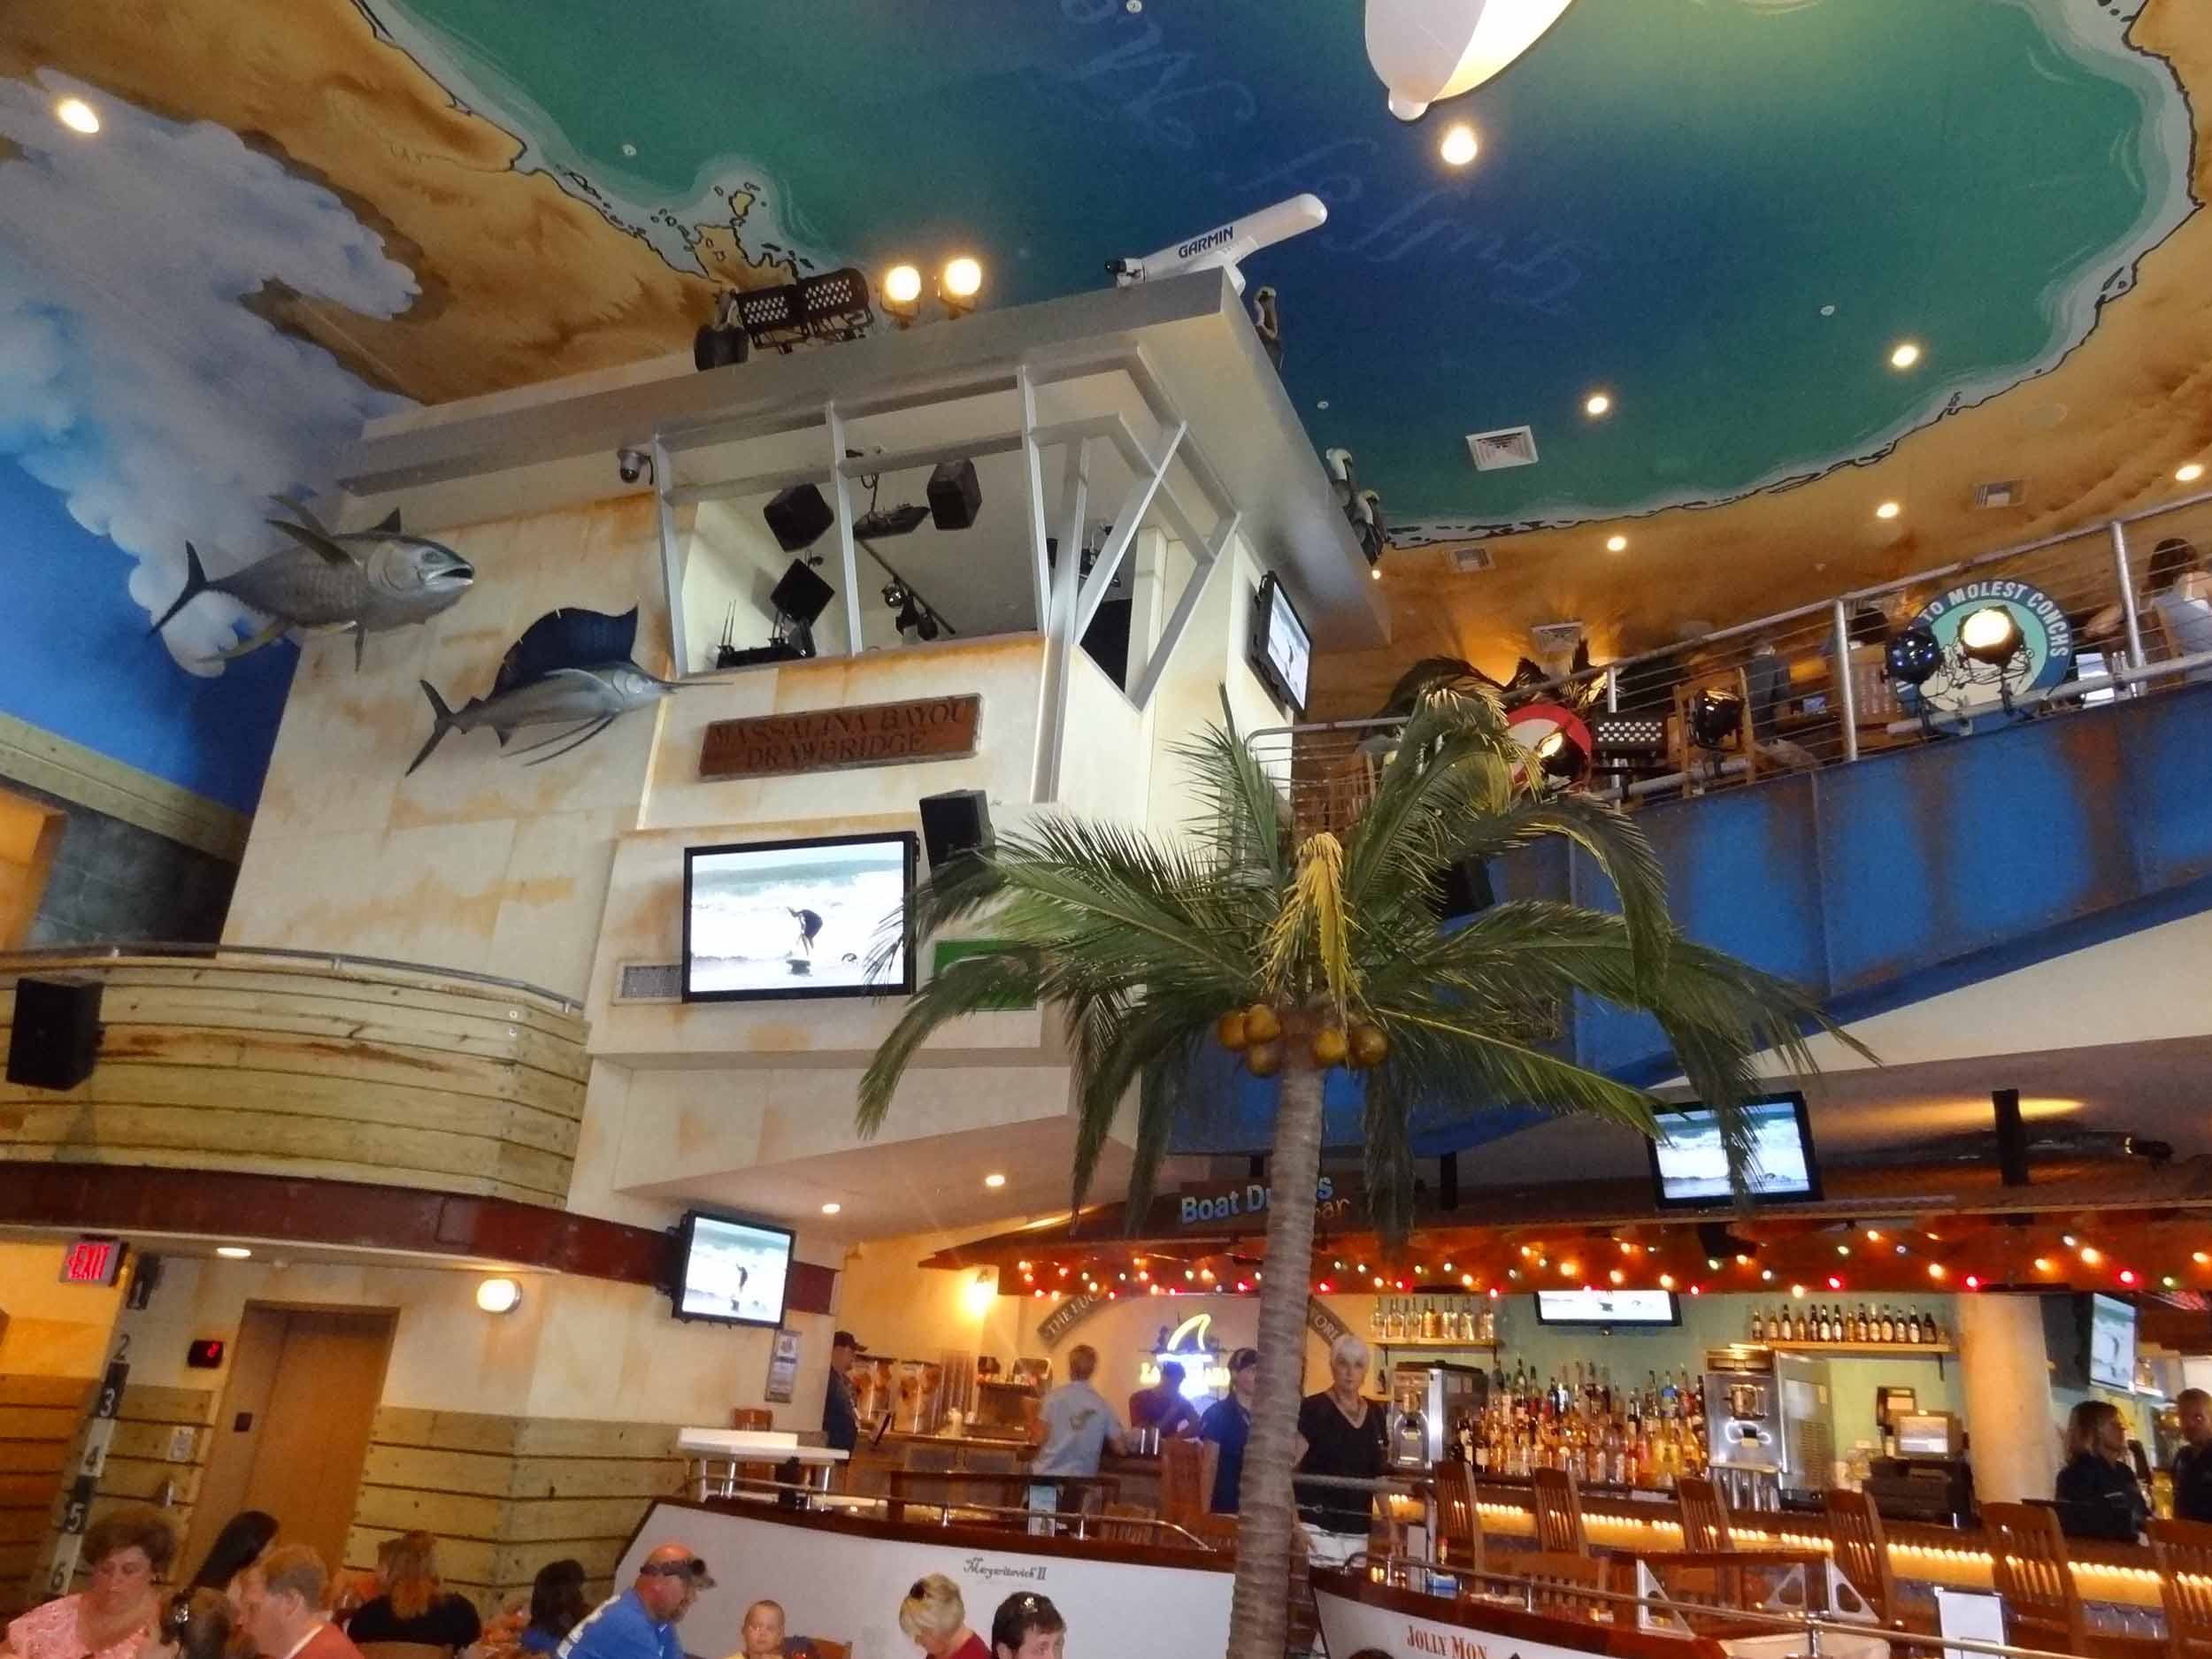 Jimmy Buffett's Margaritaville Decor